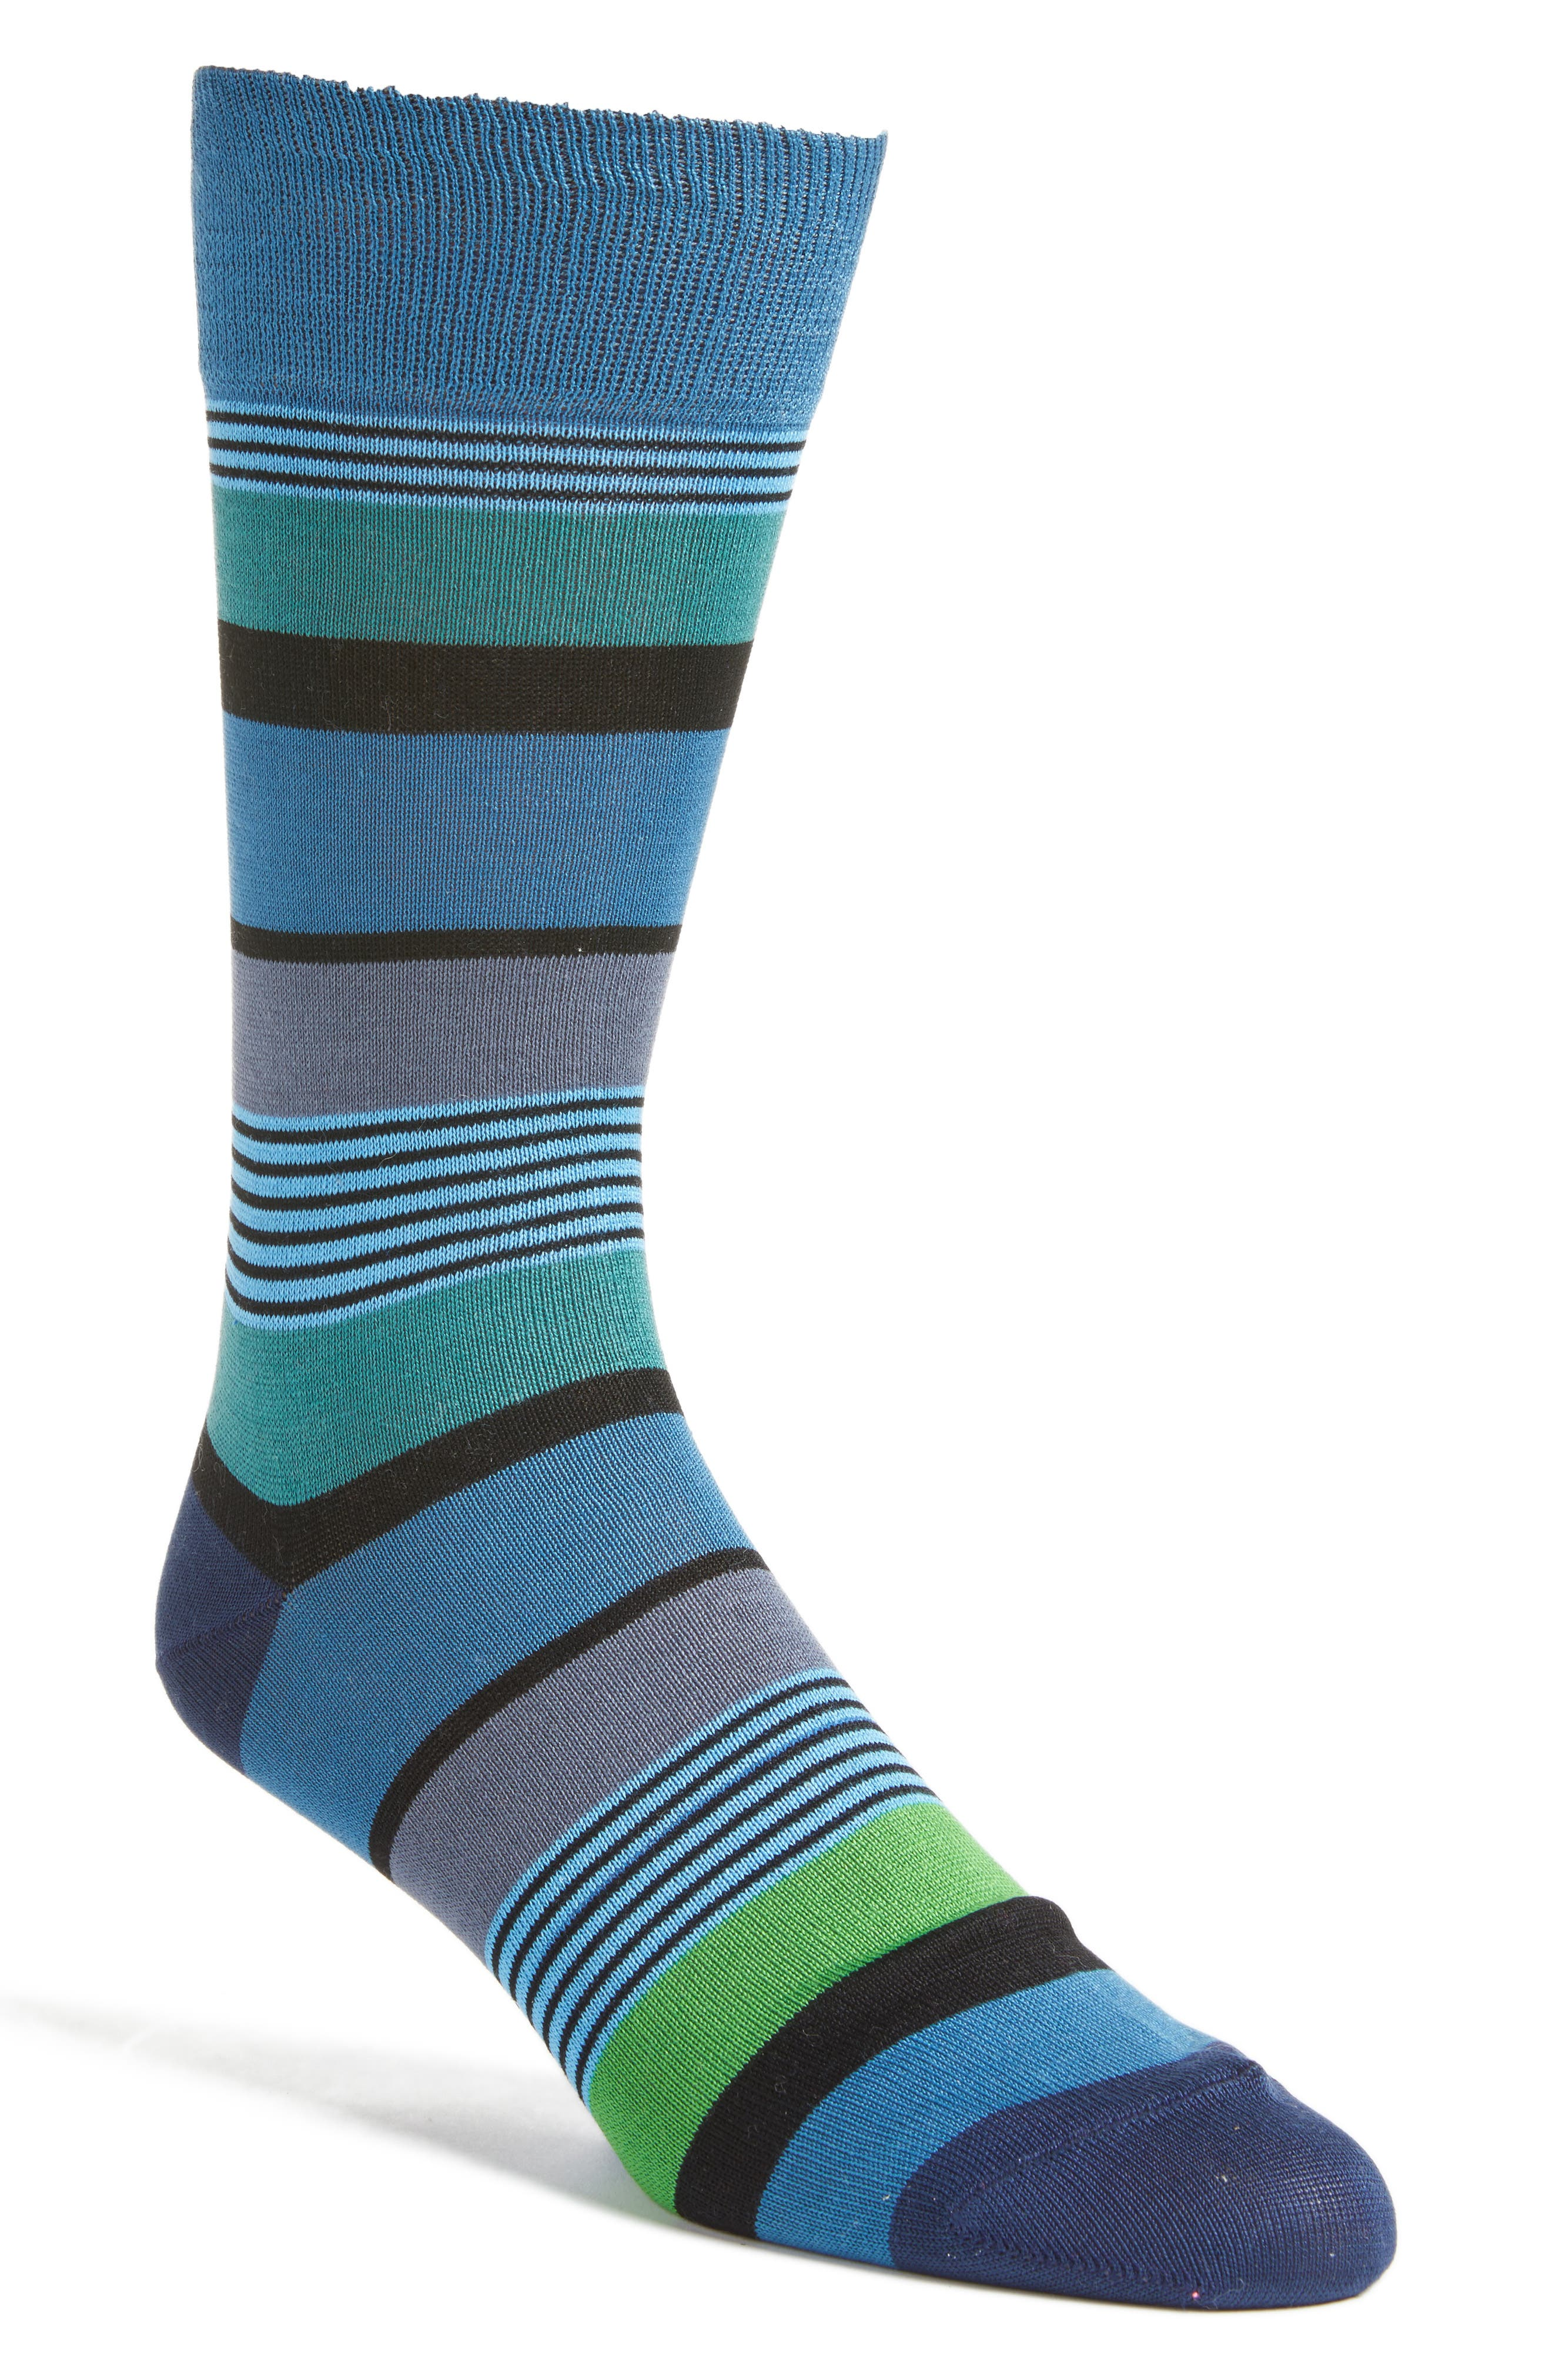 Main Image - Paul Smith Davis Stripe Crew Socks